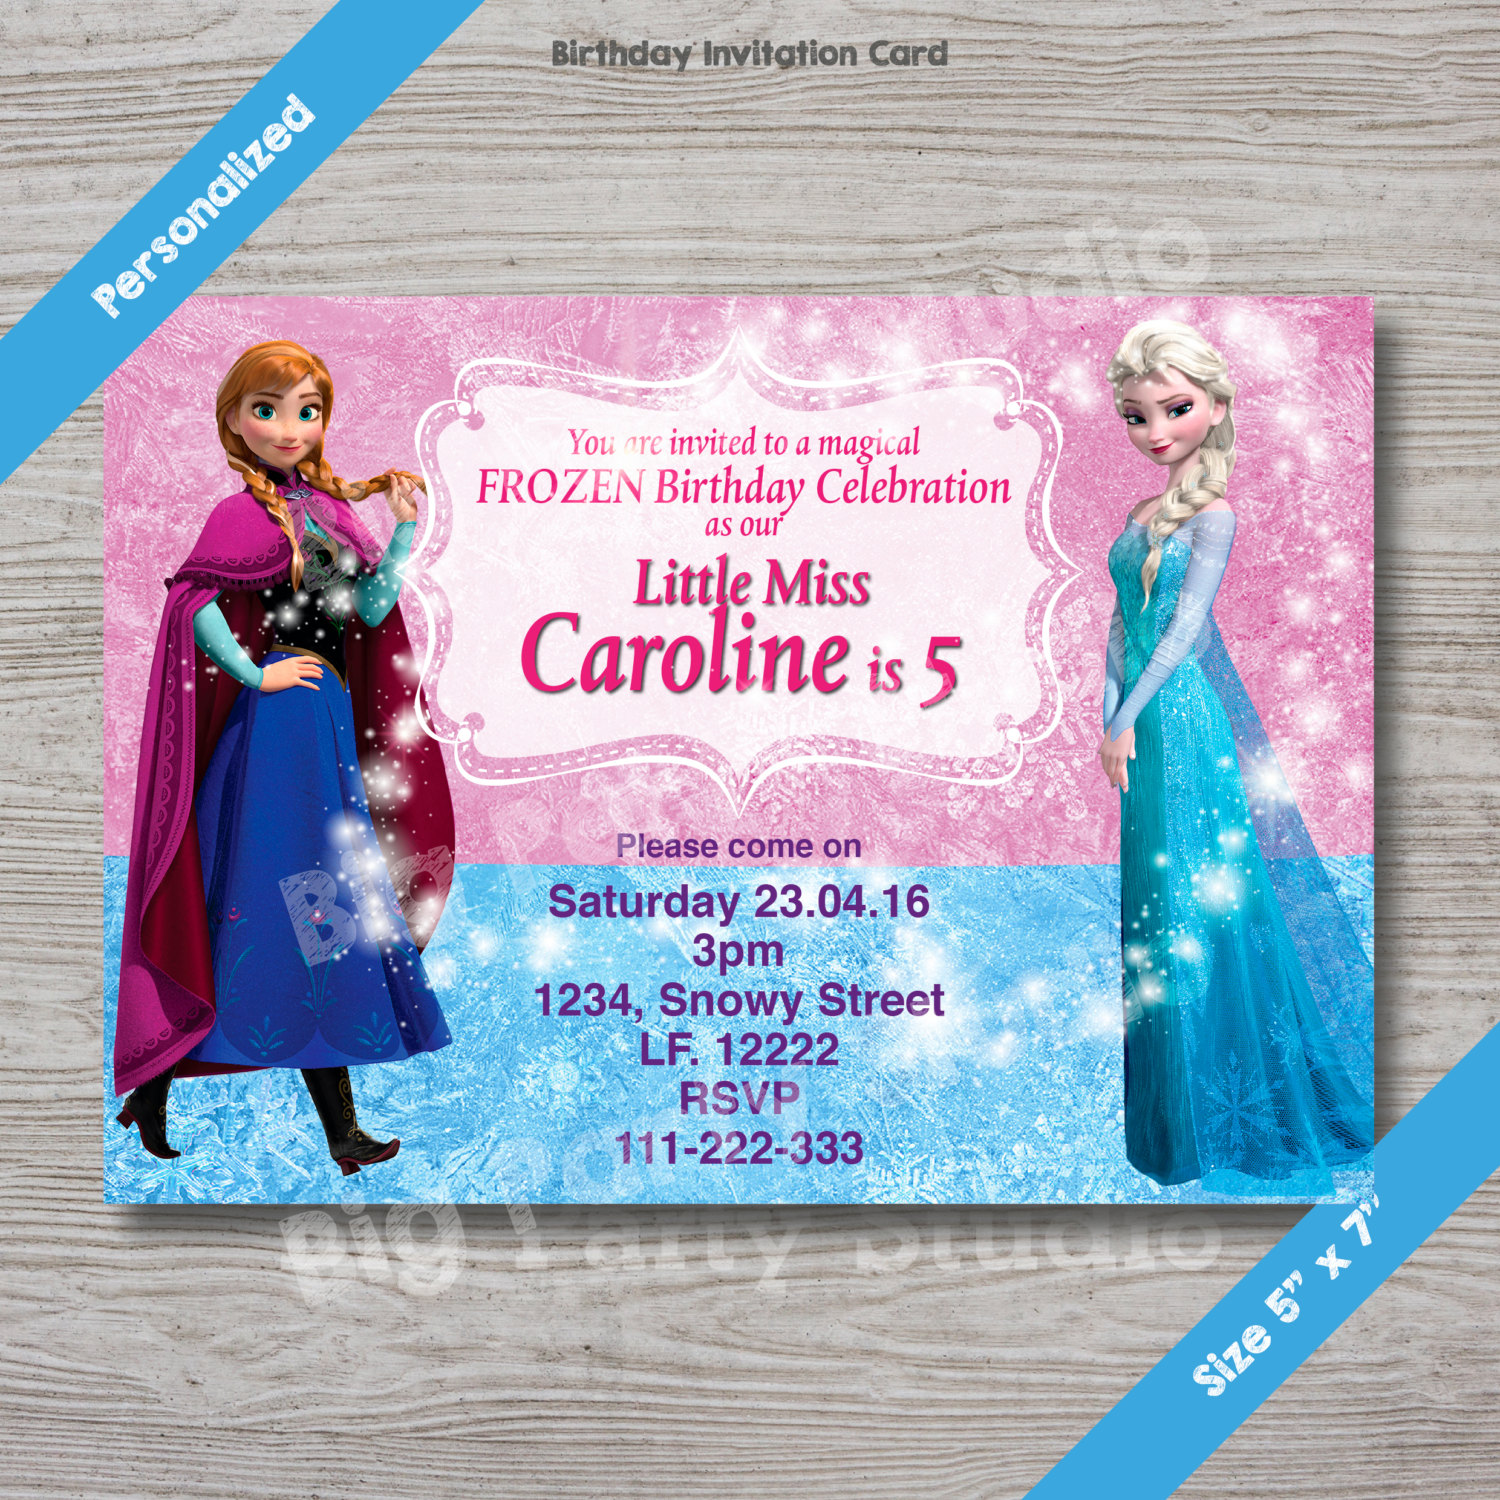 birthday invitation card themes ; 6a36f20bc199a4942dc6d1d64a758f01